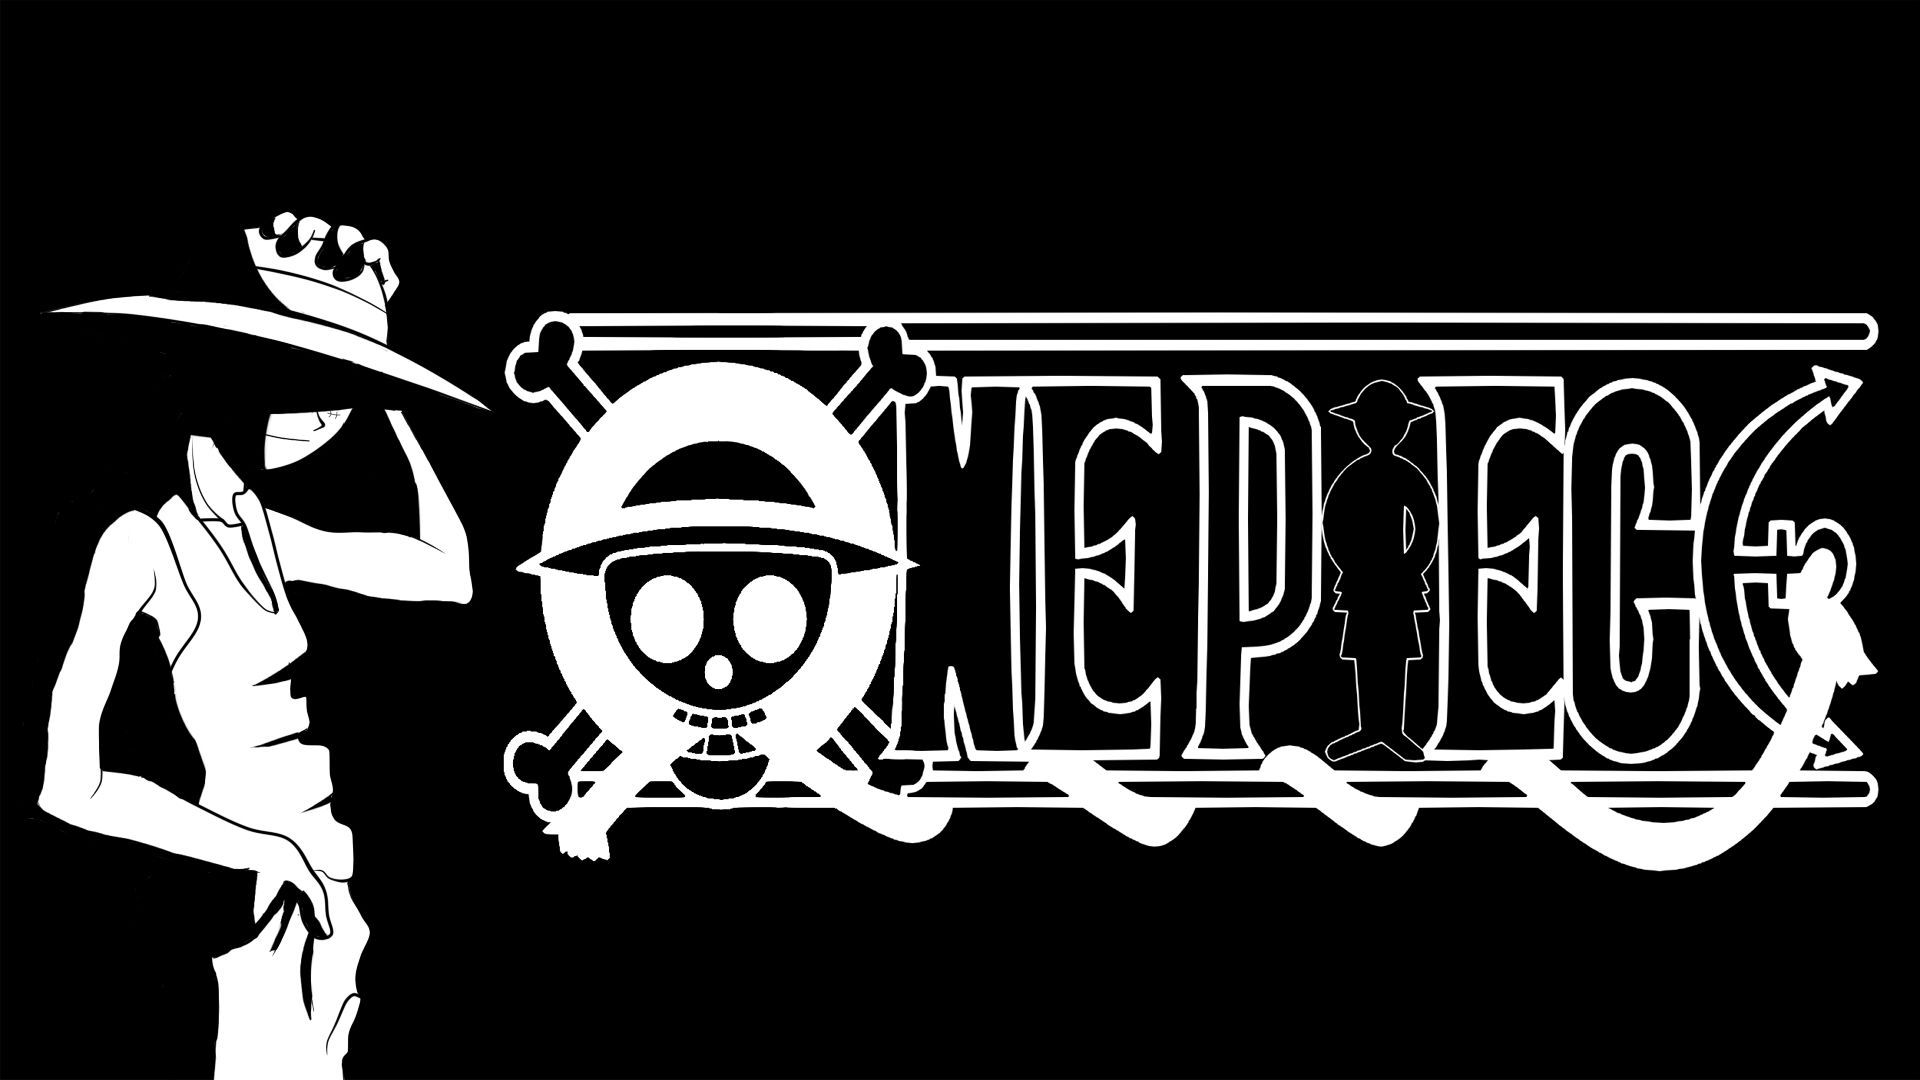 One Piece Black And White Anime Wallpaper For Desktop 528203838